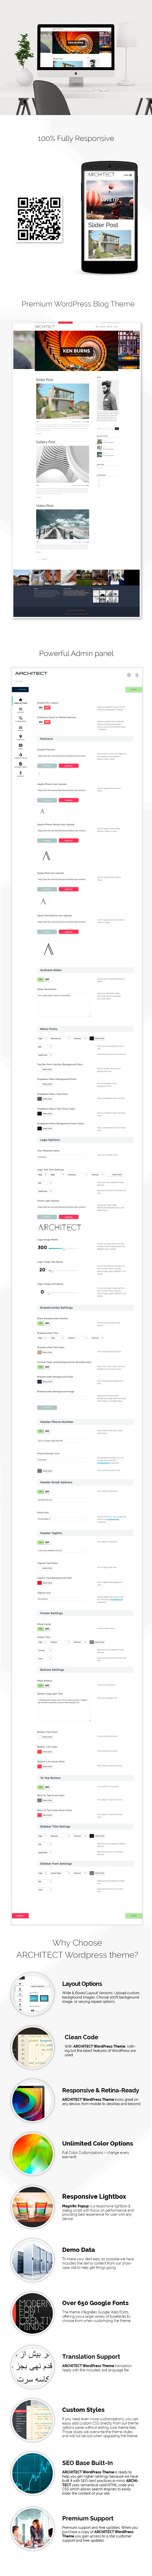 Architect-BIG-promo-78hFl.png